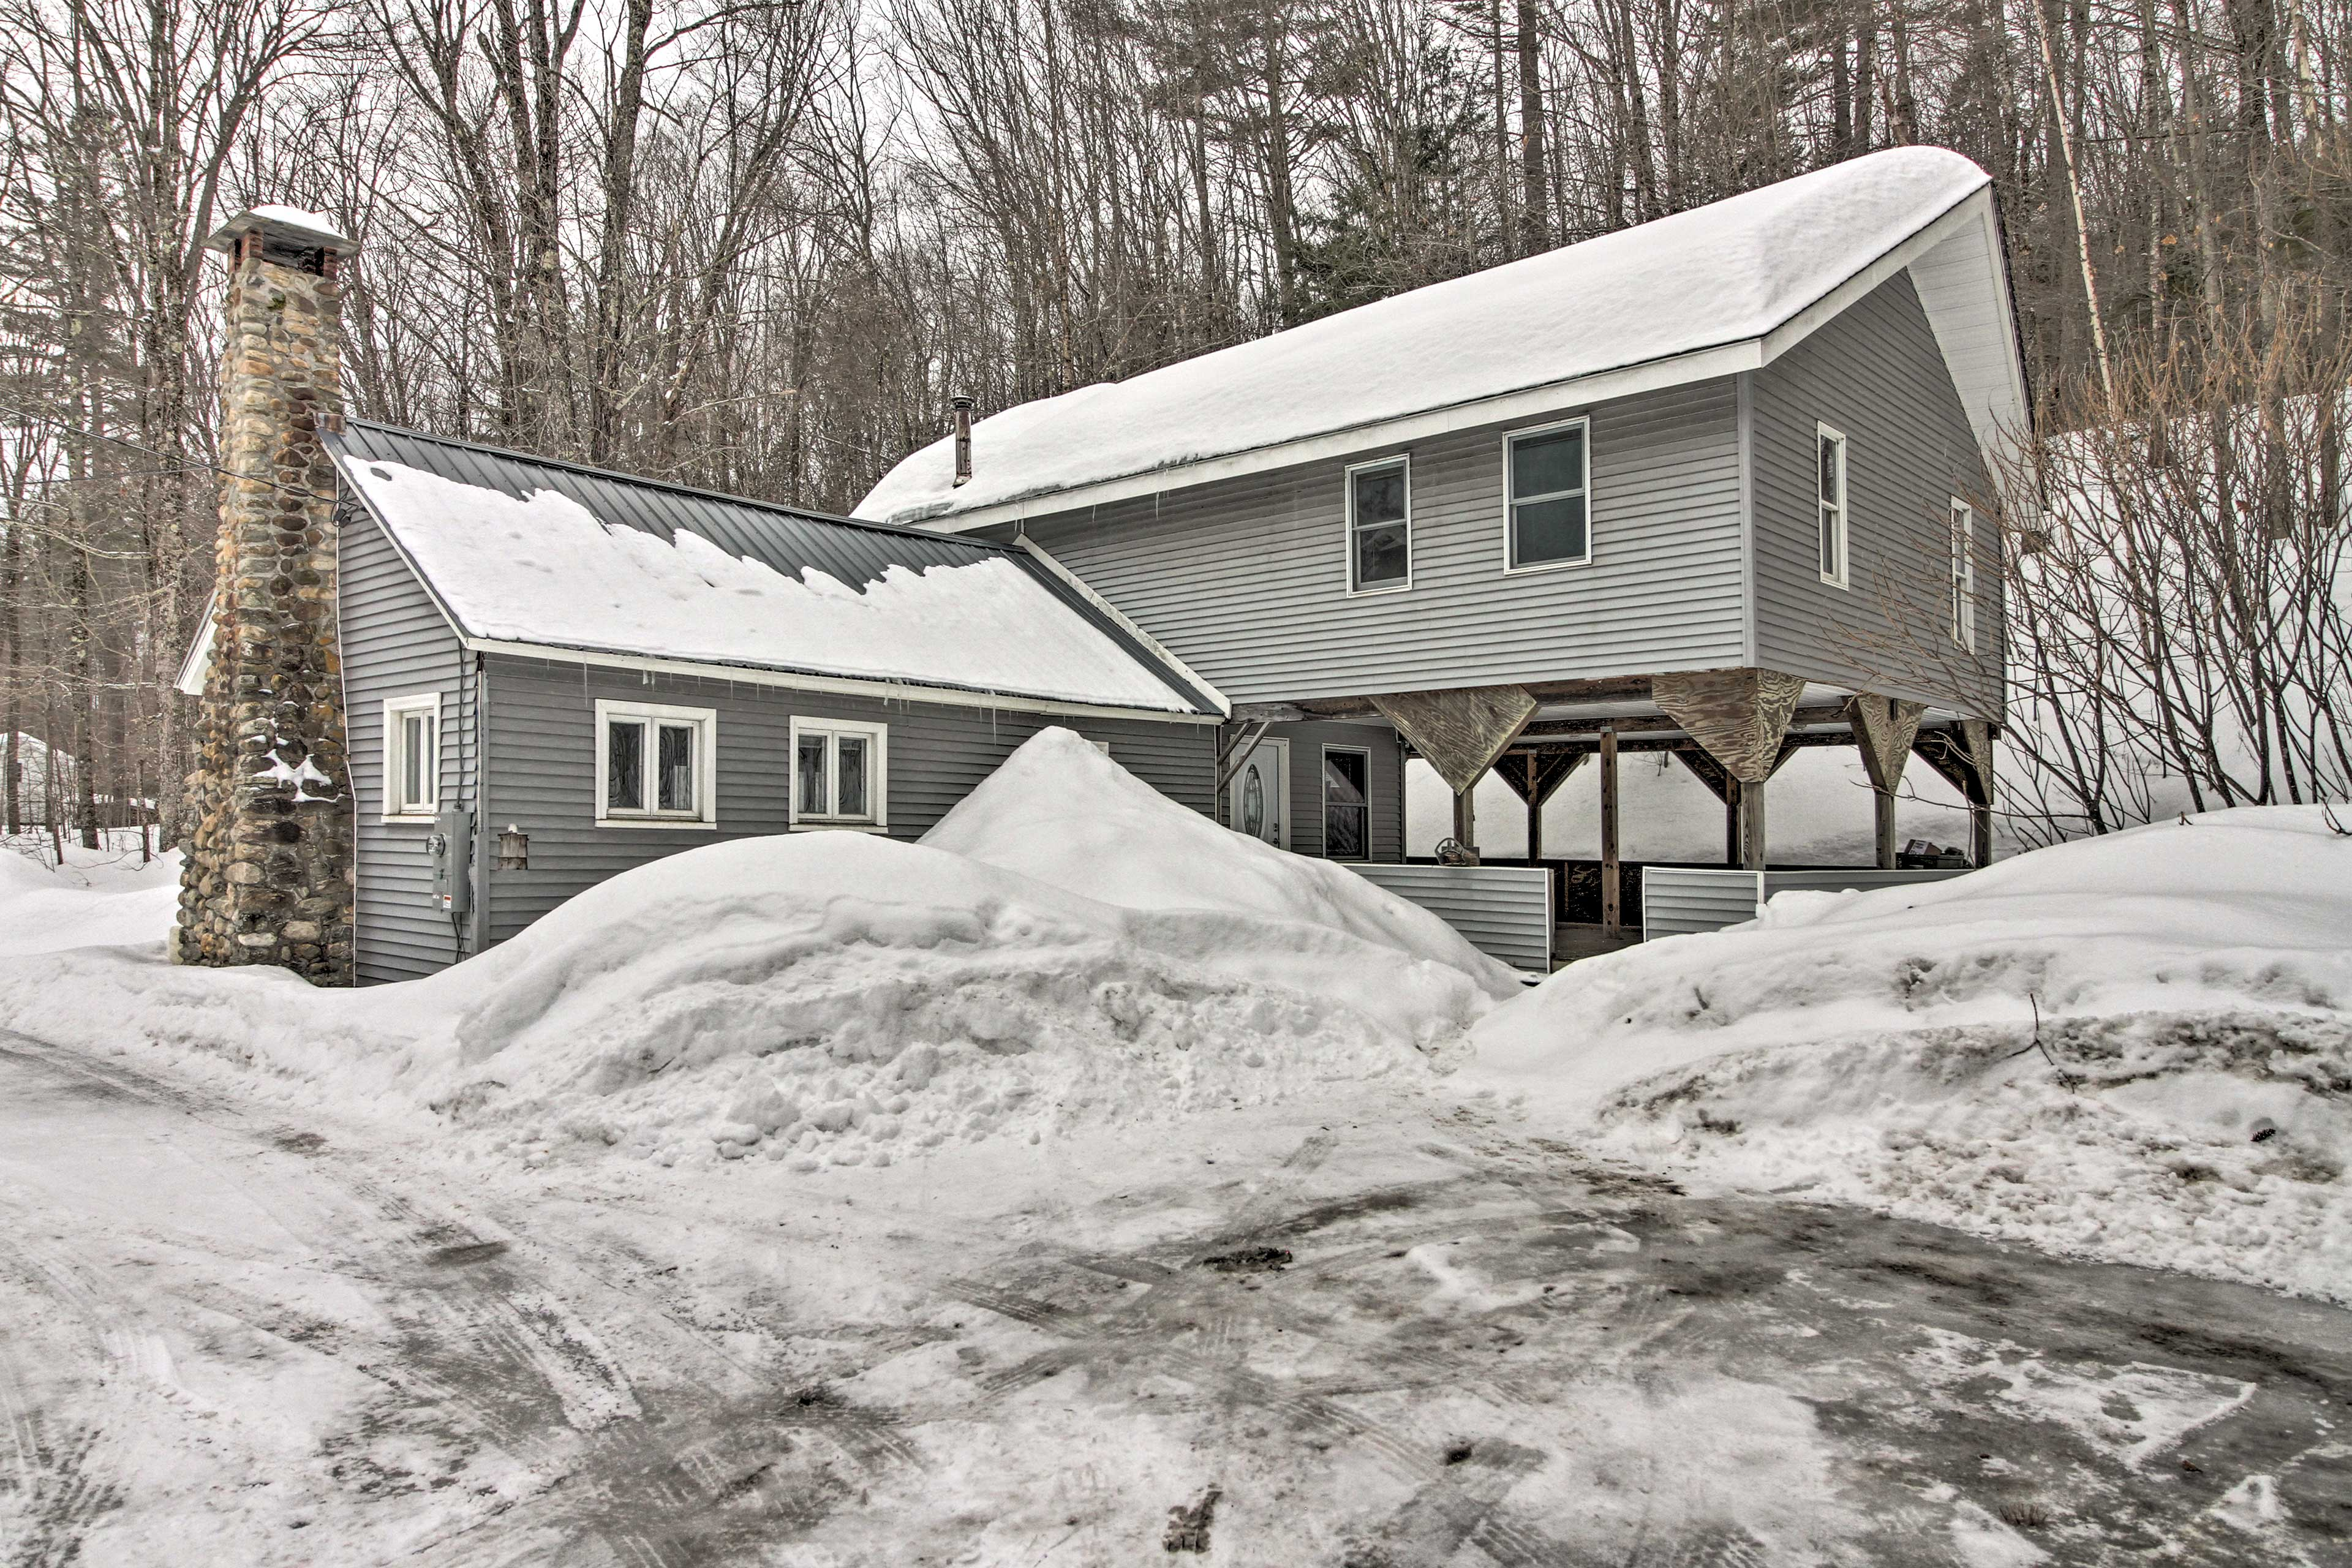 Sitting a short drive from ski resorts, this cozy home has it all!